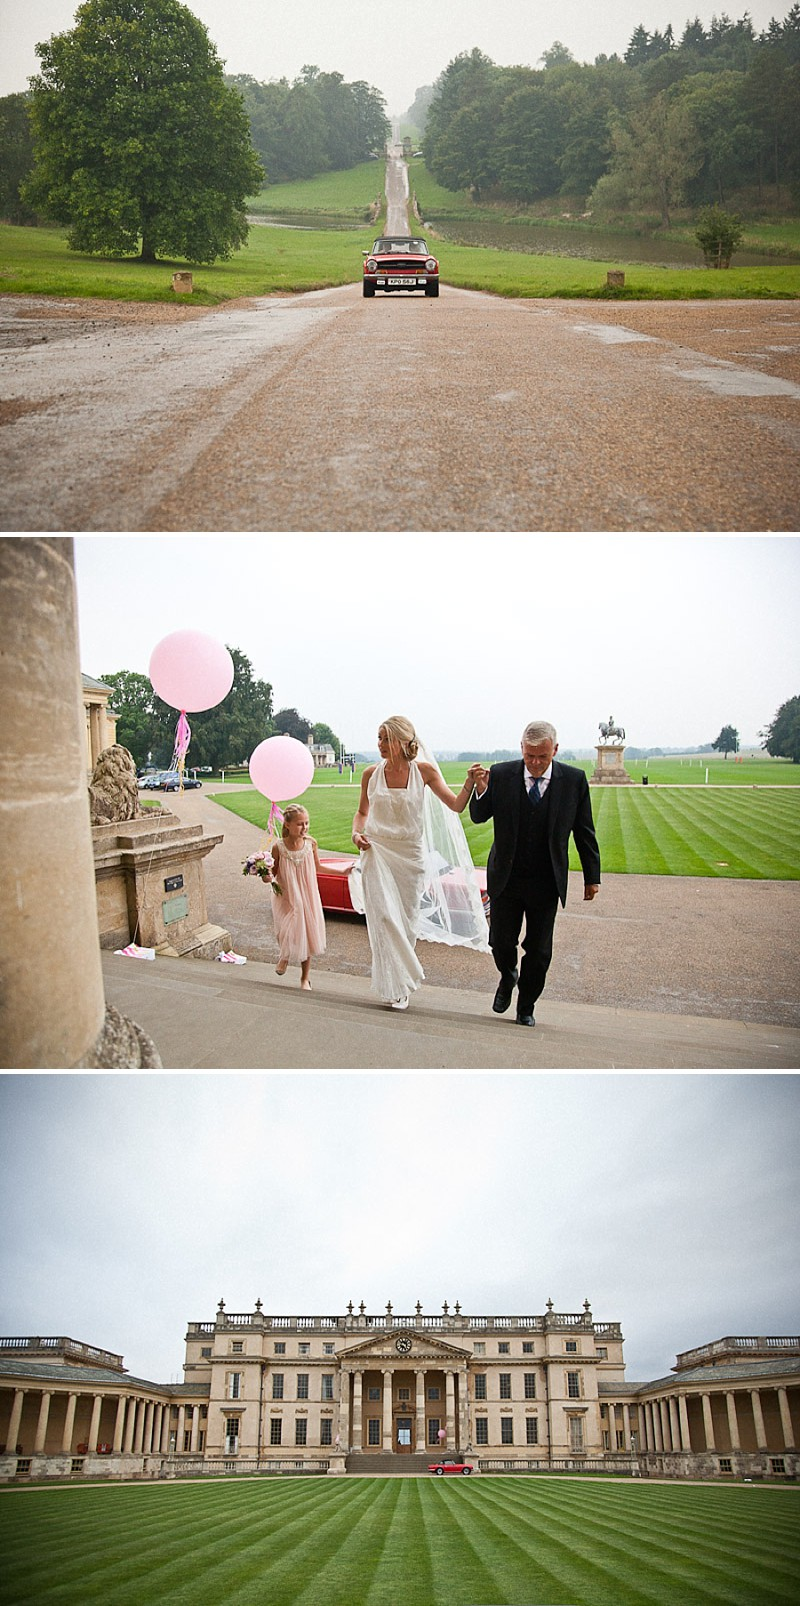 An Elegant Wedding At Stowe House In Buckinghamshire With Bride In Twenties Style Charlie Brear Gown And Groom In Suit By The Kooples Images From Matt Parry Photography_0001